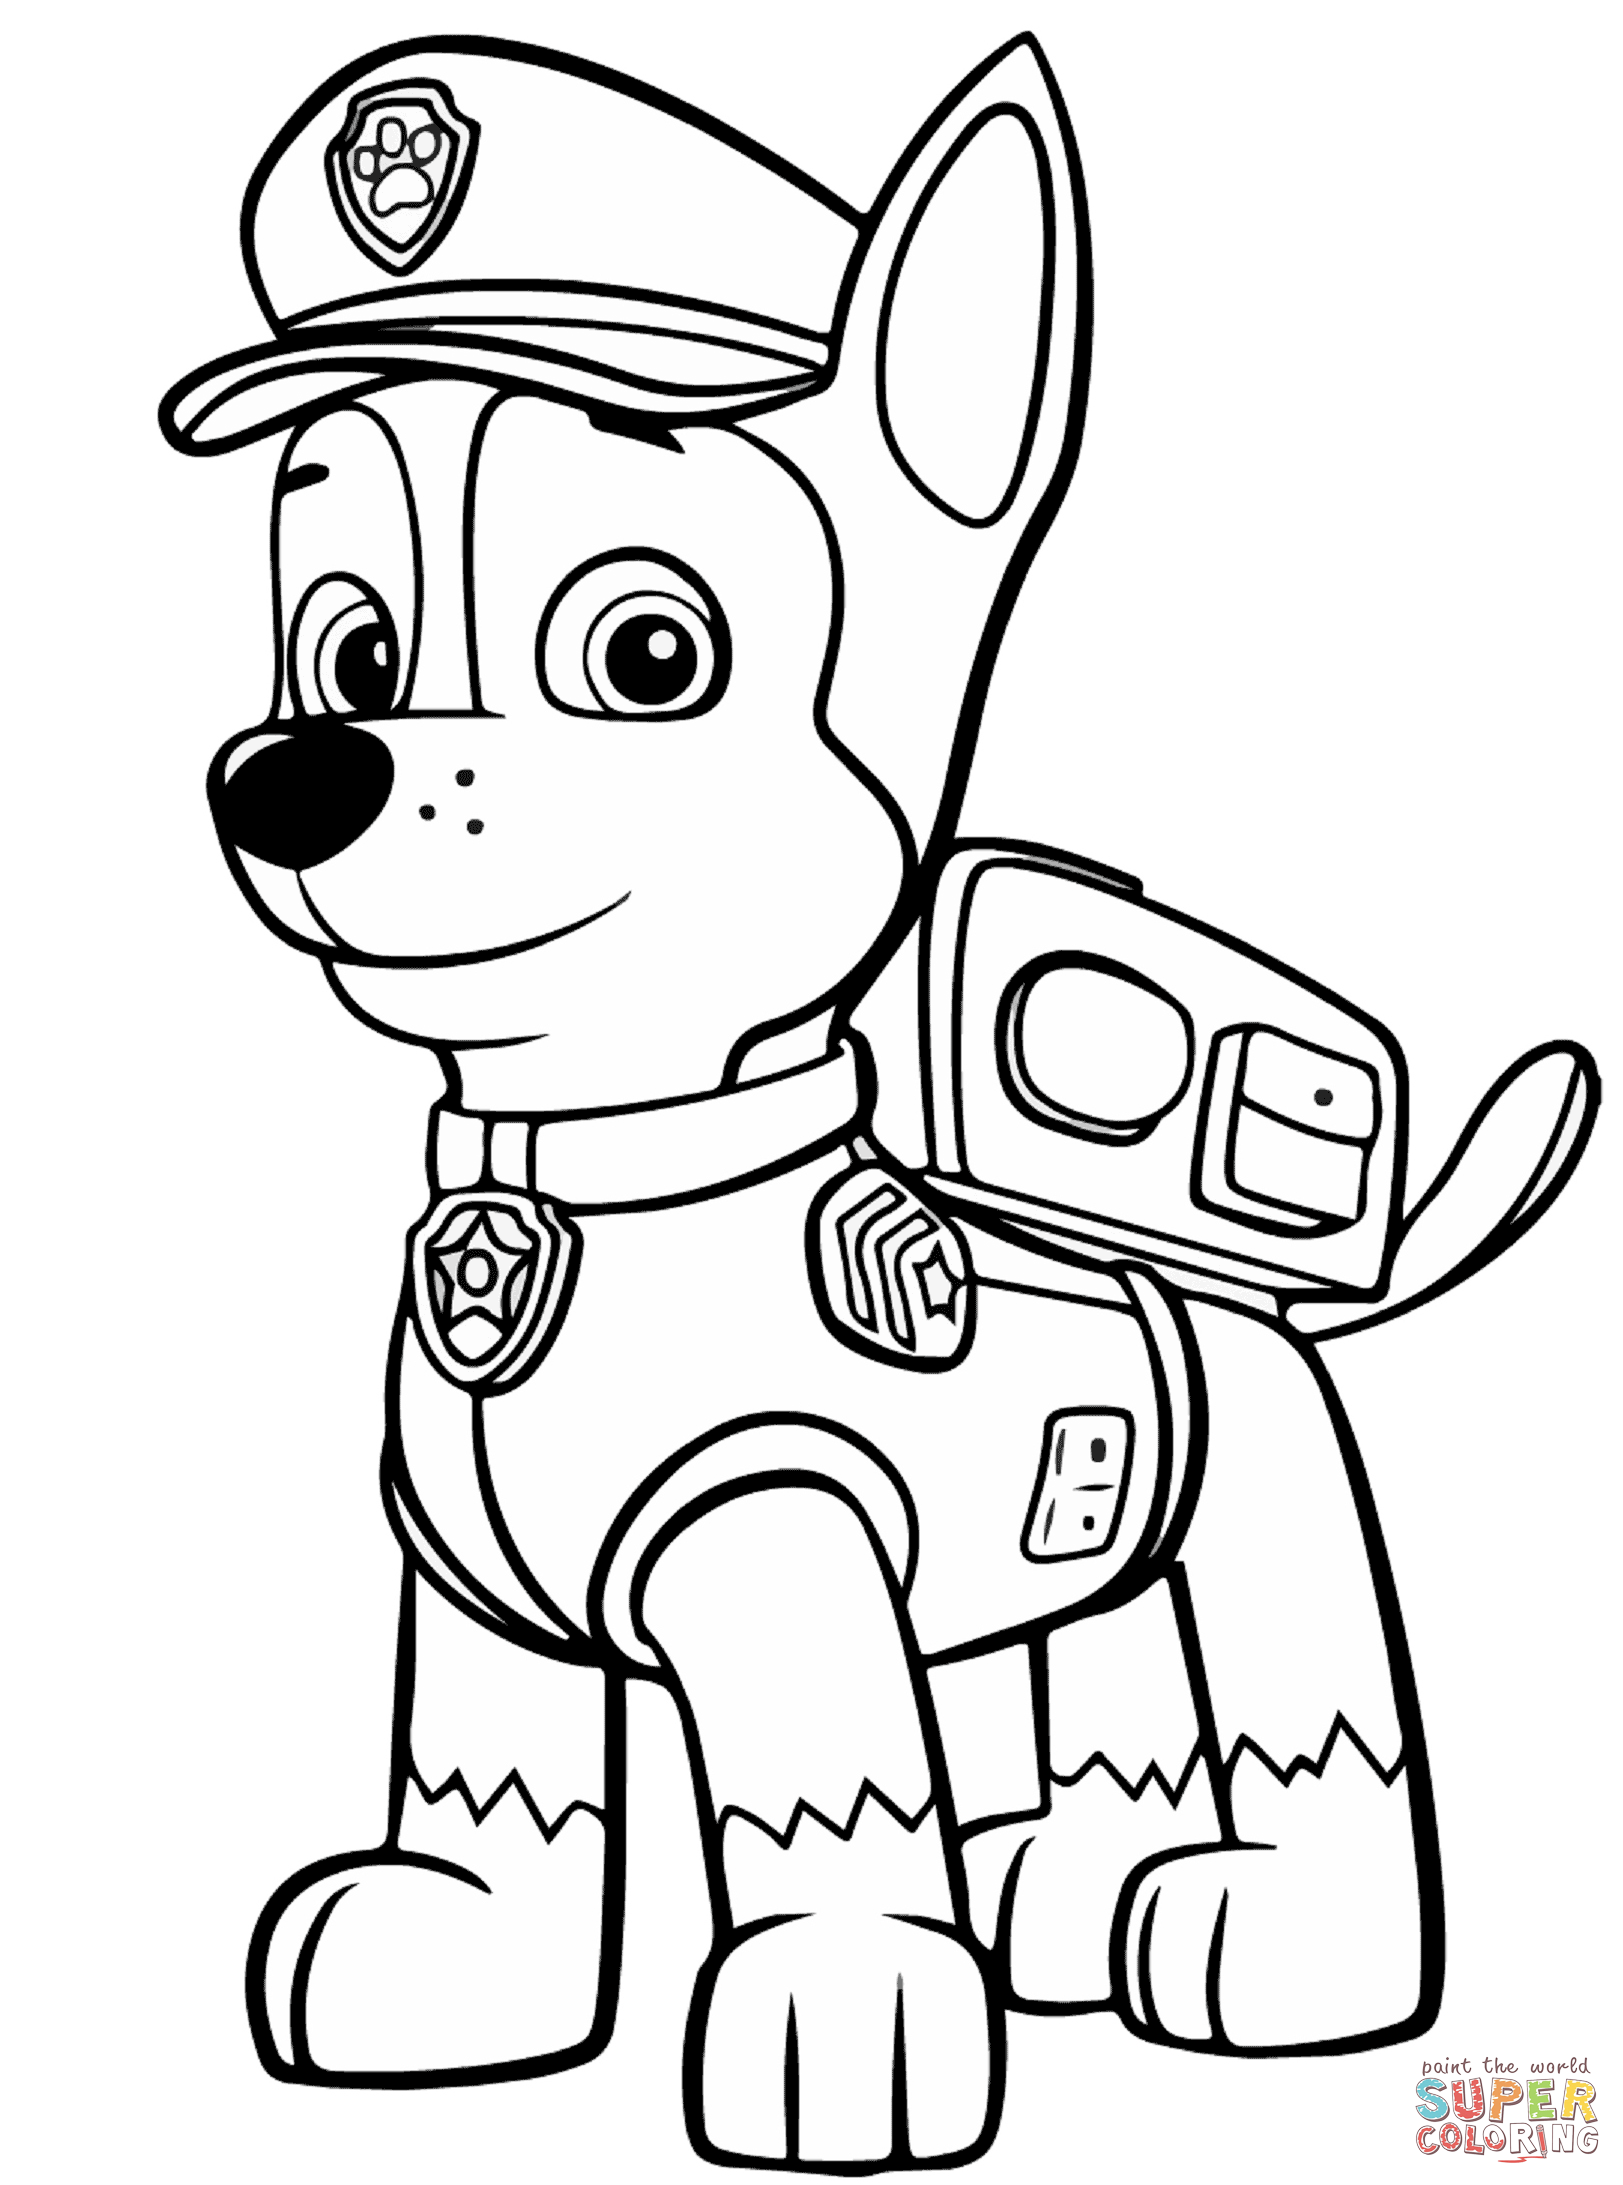 Paw Patrol Chase Coloring Pages 01 Coloring Pages Paw Patrol